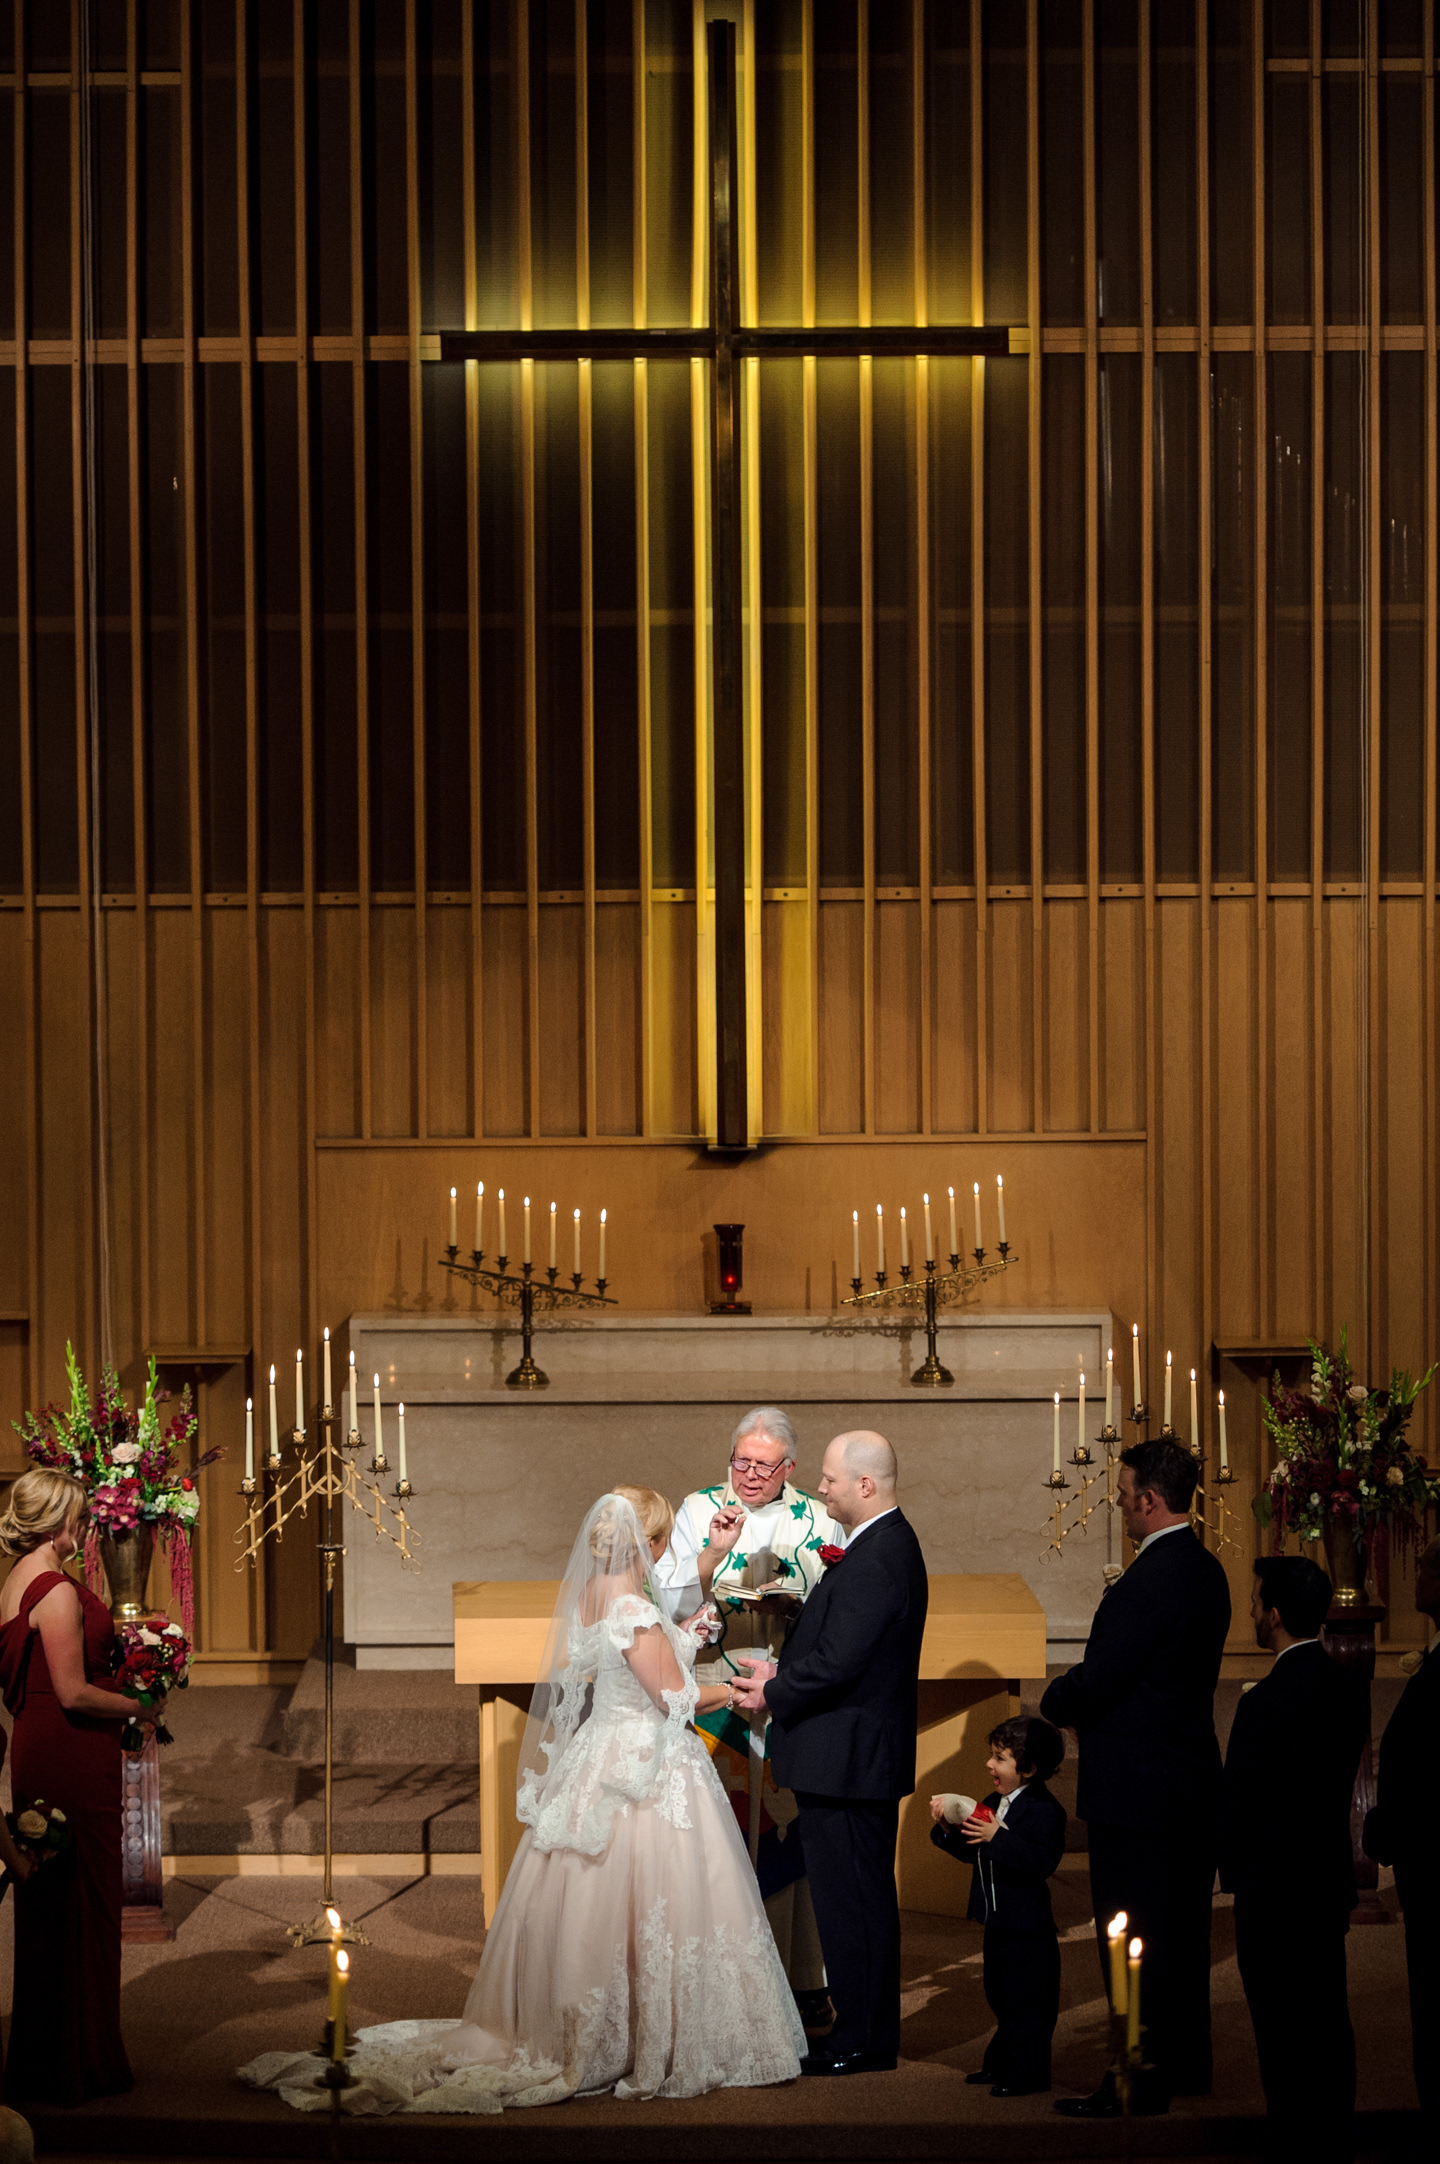 Bride and Groom During Wedding Ceremony at University Lutheran Church